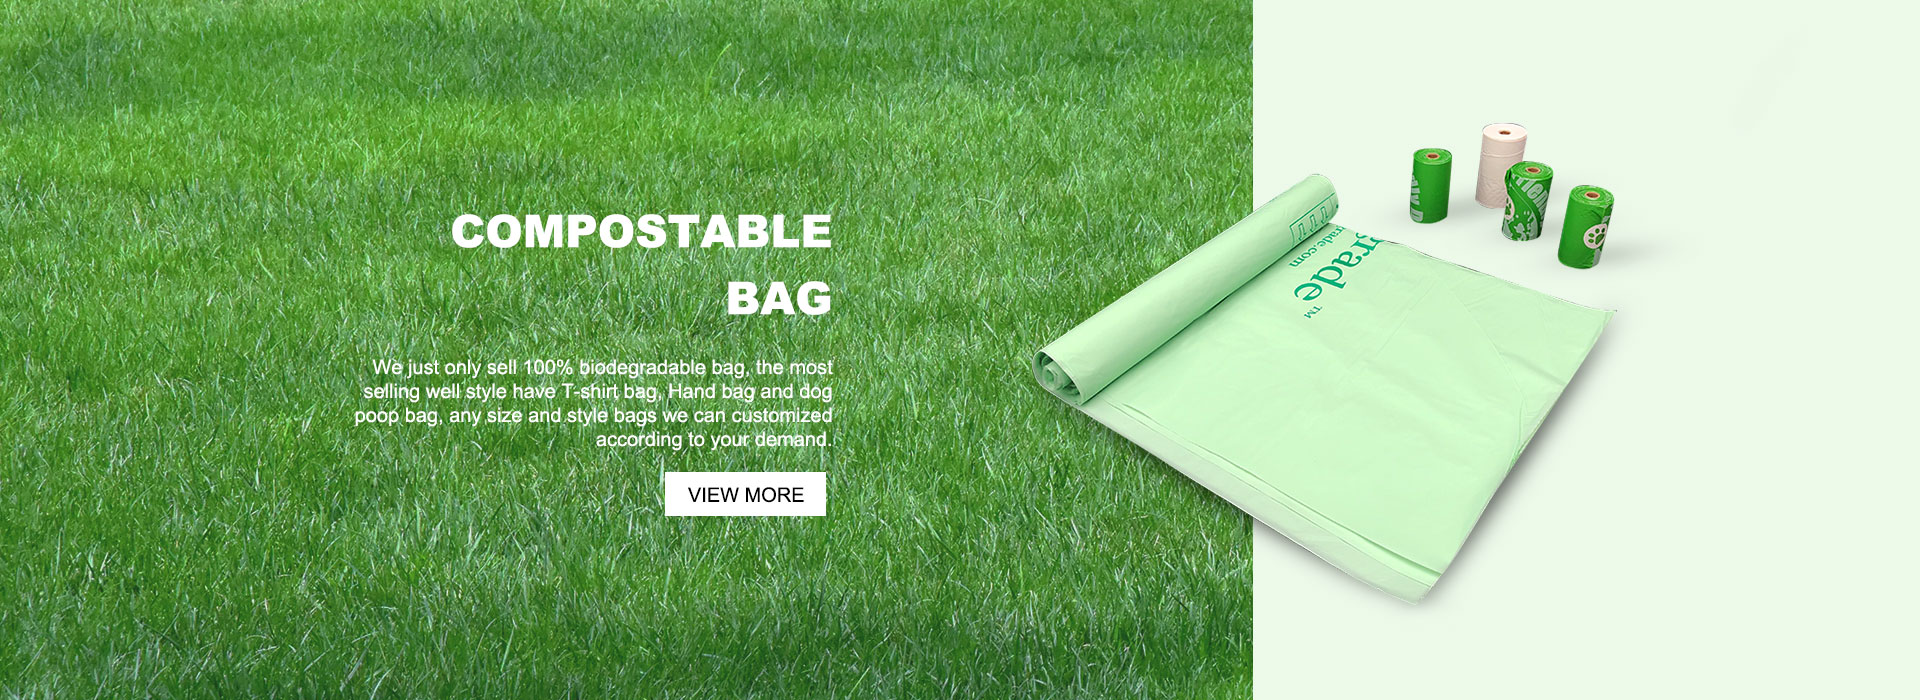 Compostable-Bag